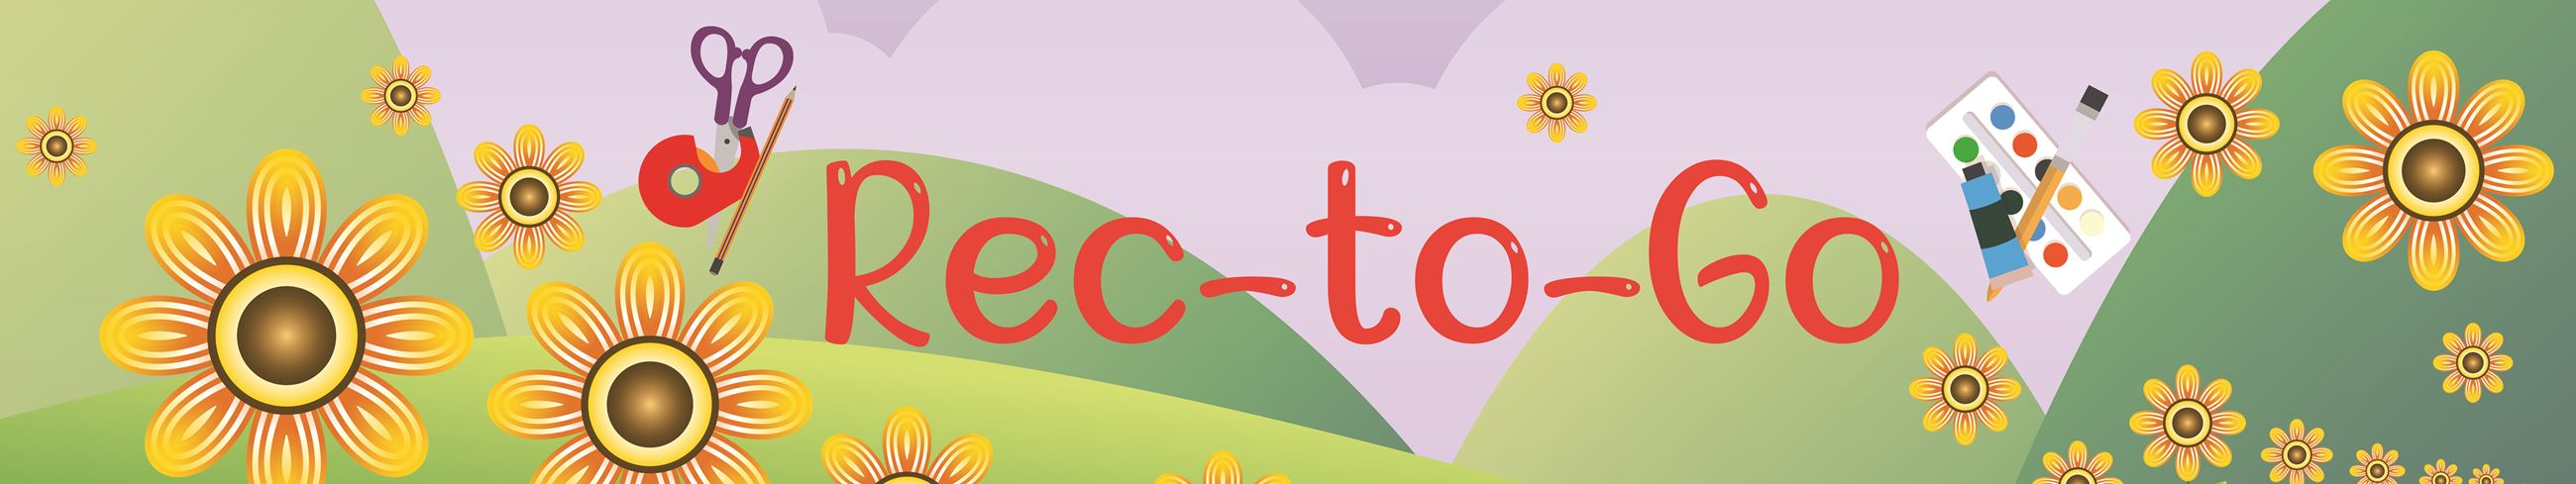 Rec-to-Go Spring Banner